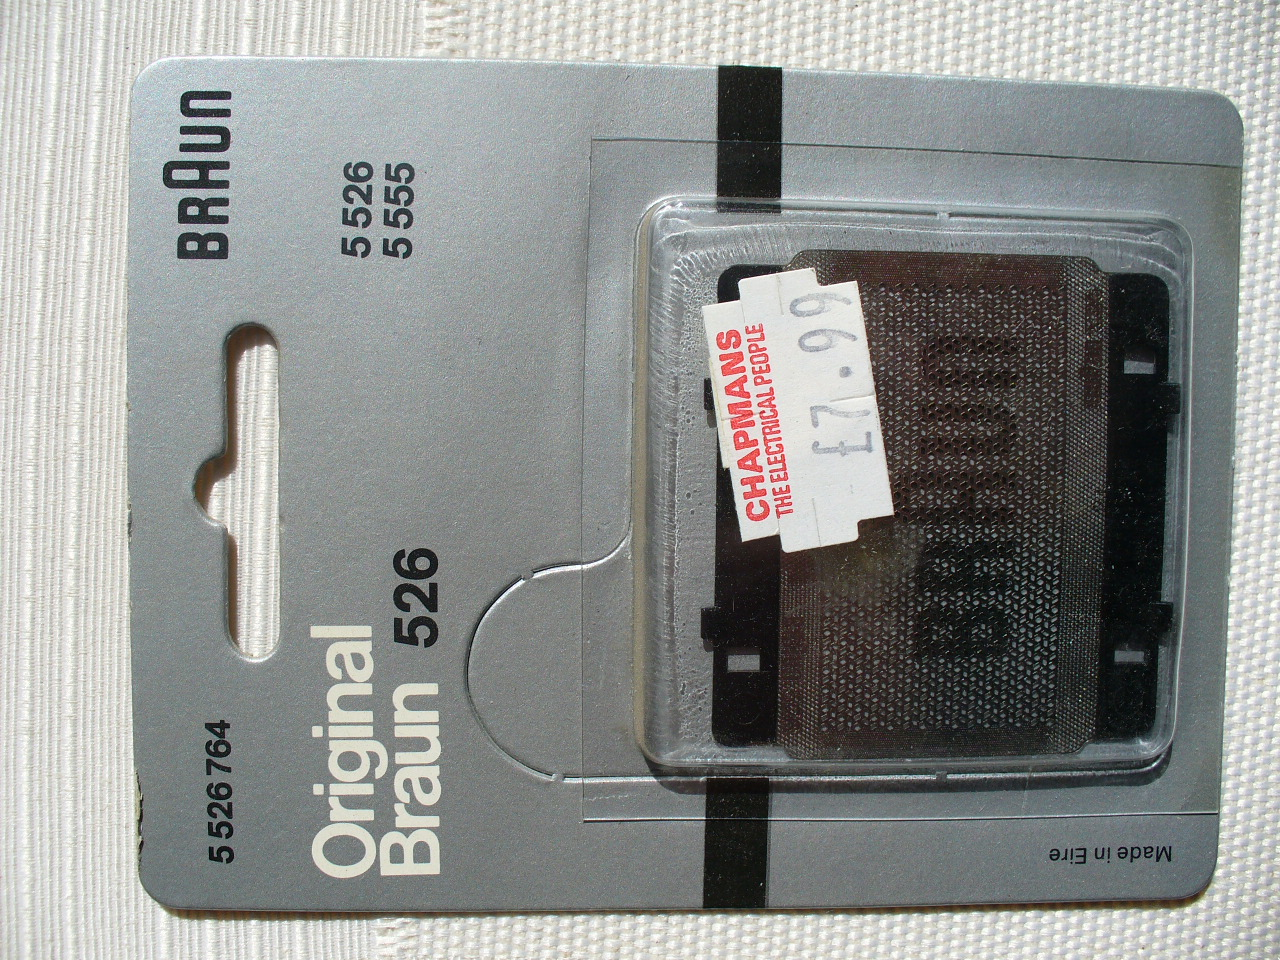 Braun Original Part 5526764 Shaver Foil for 5526, 5555